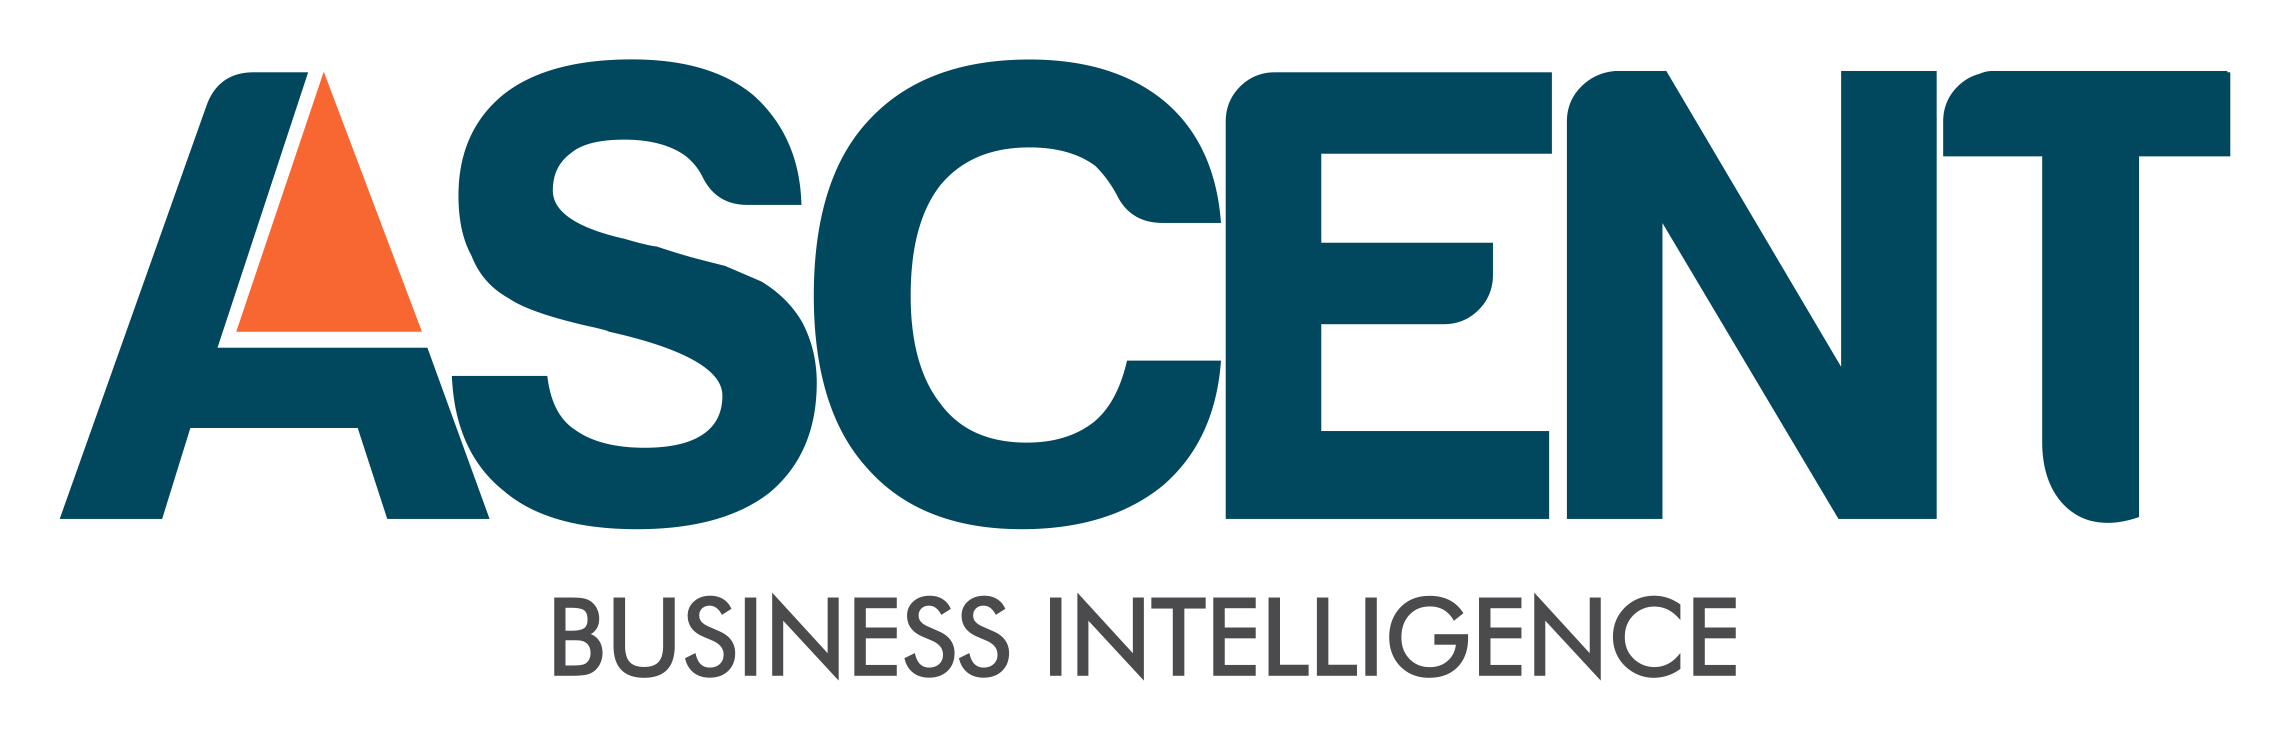 Grupo ASCENT - Business Intelligence